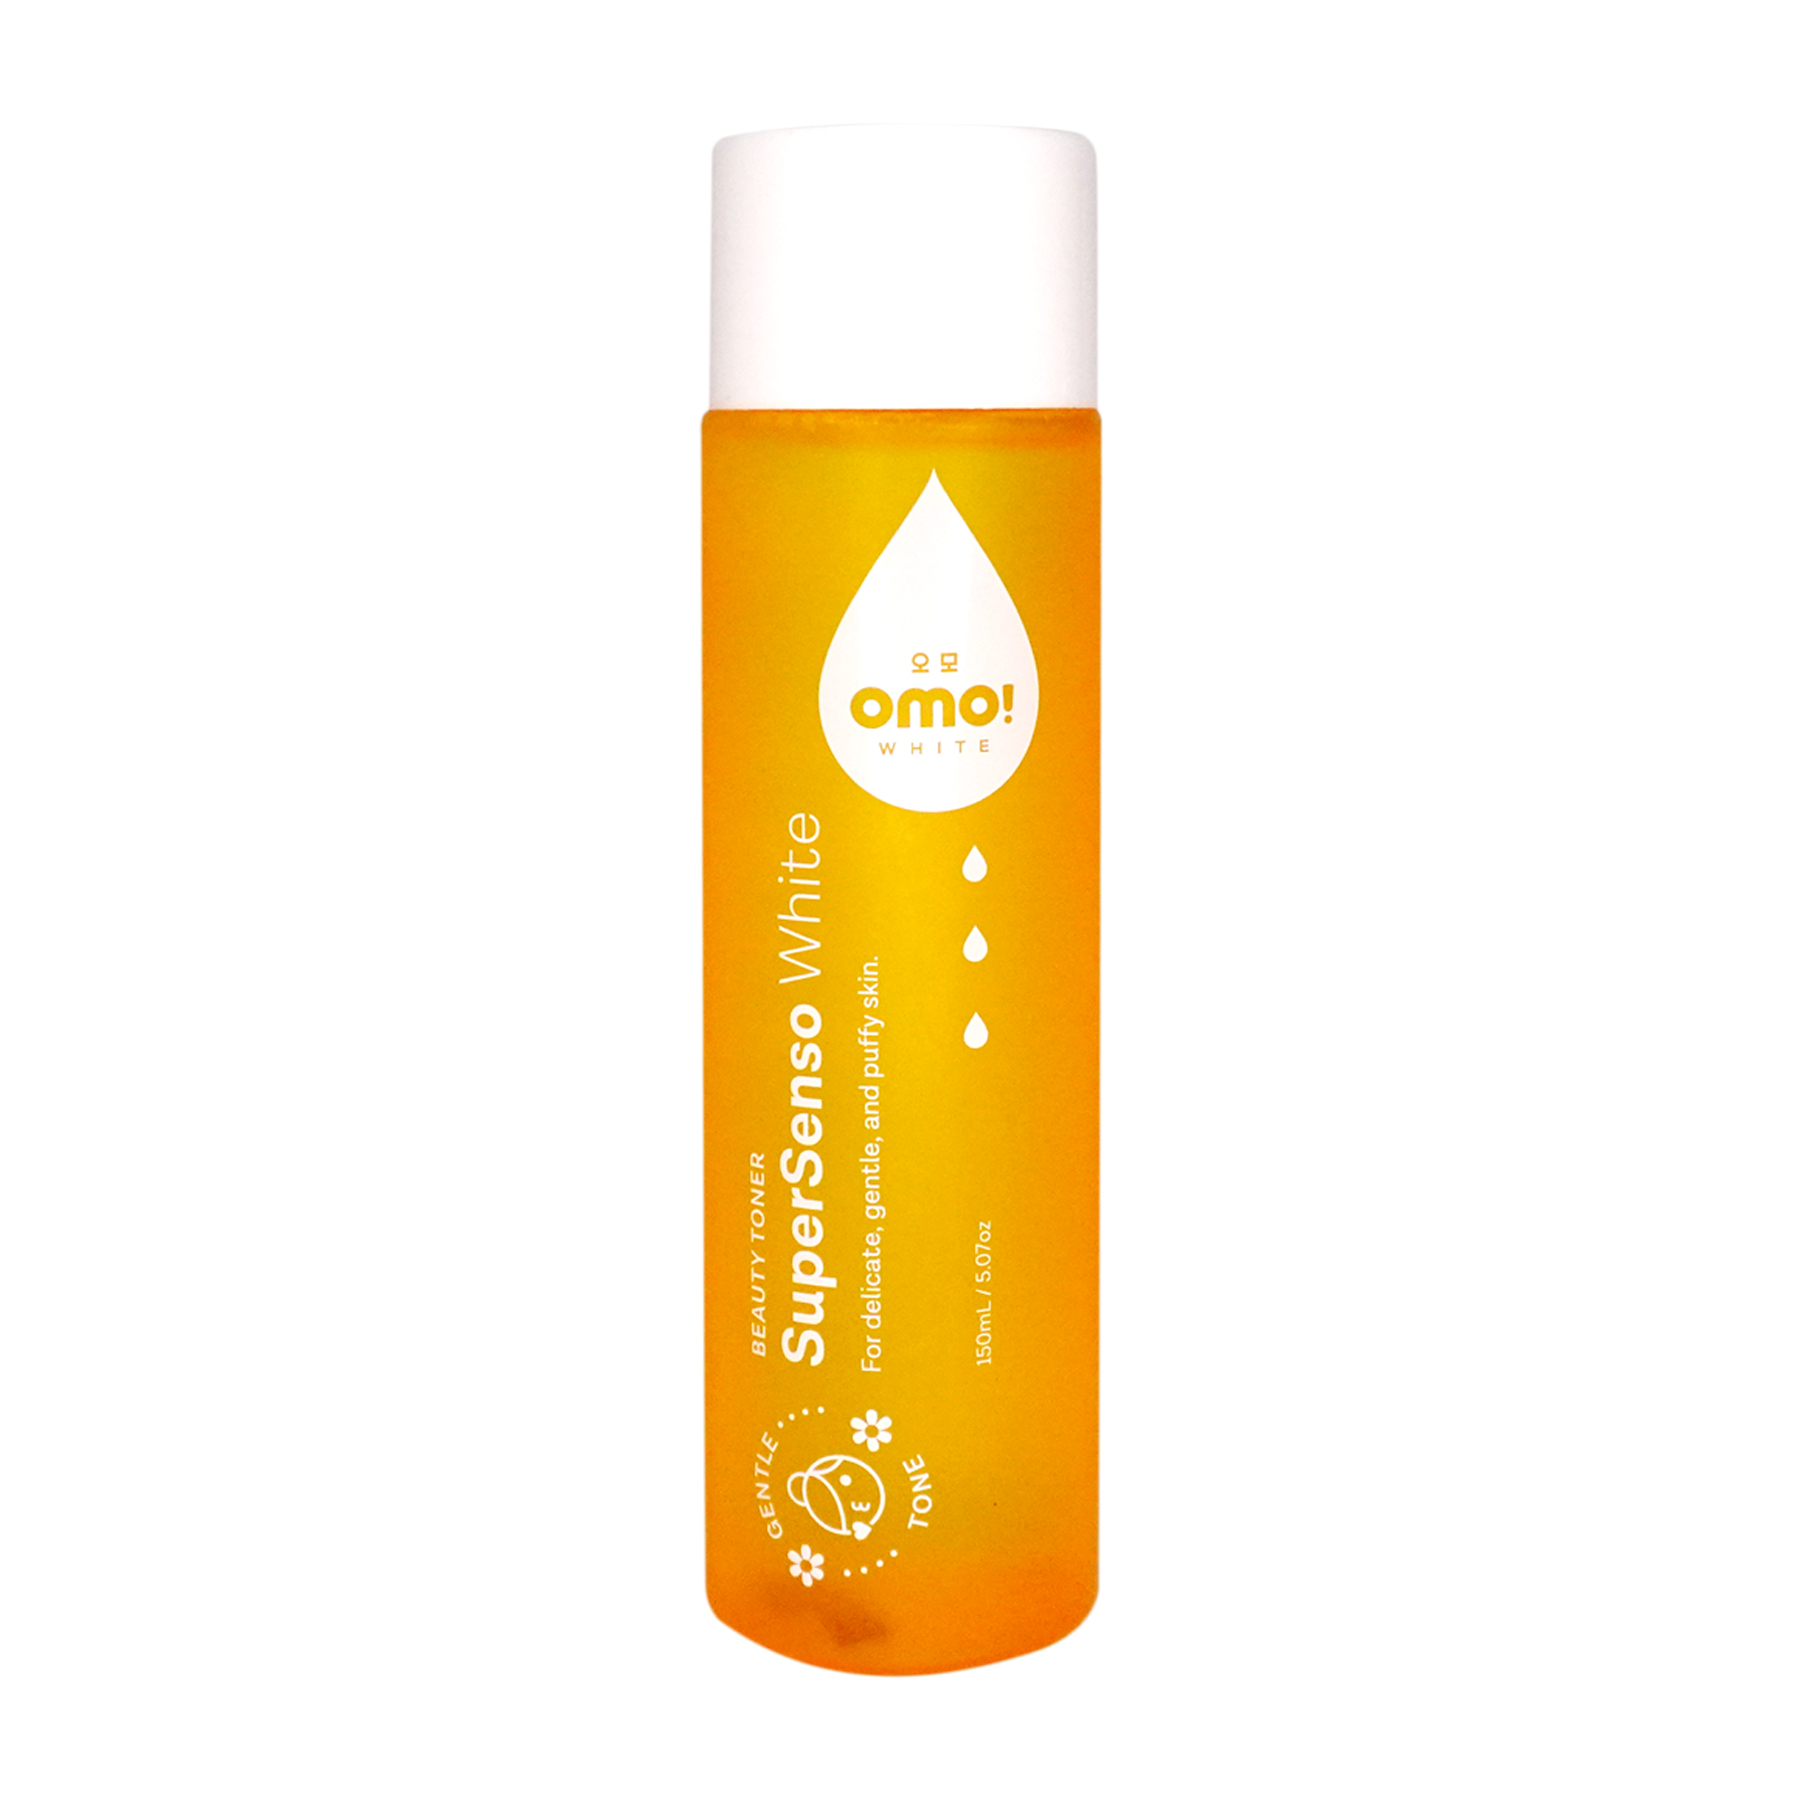 SuperSenso Beauty Toner For Gentle Skin (150ml) by OMO! White